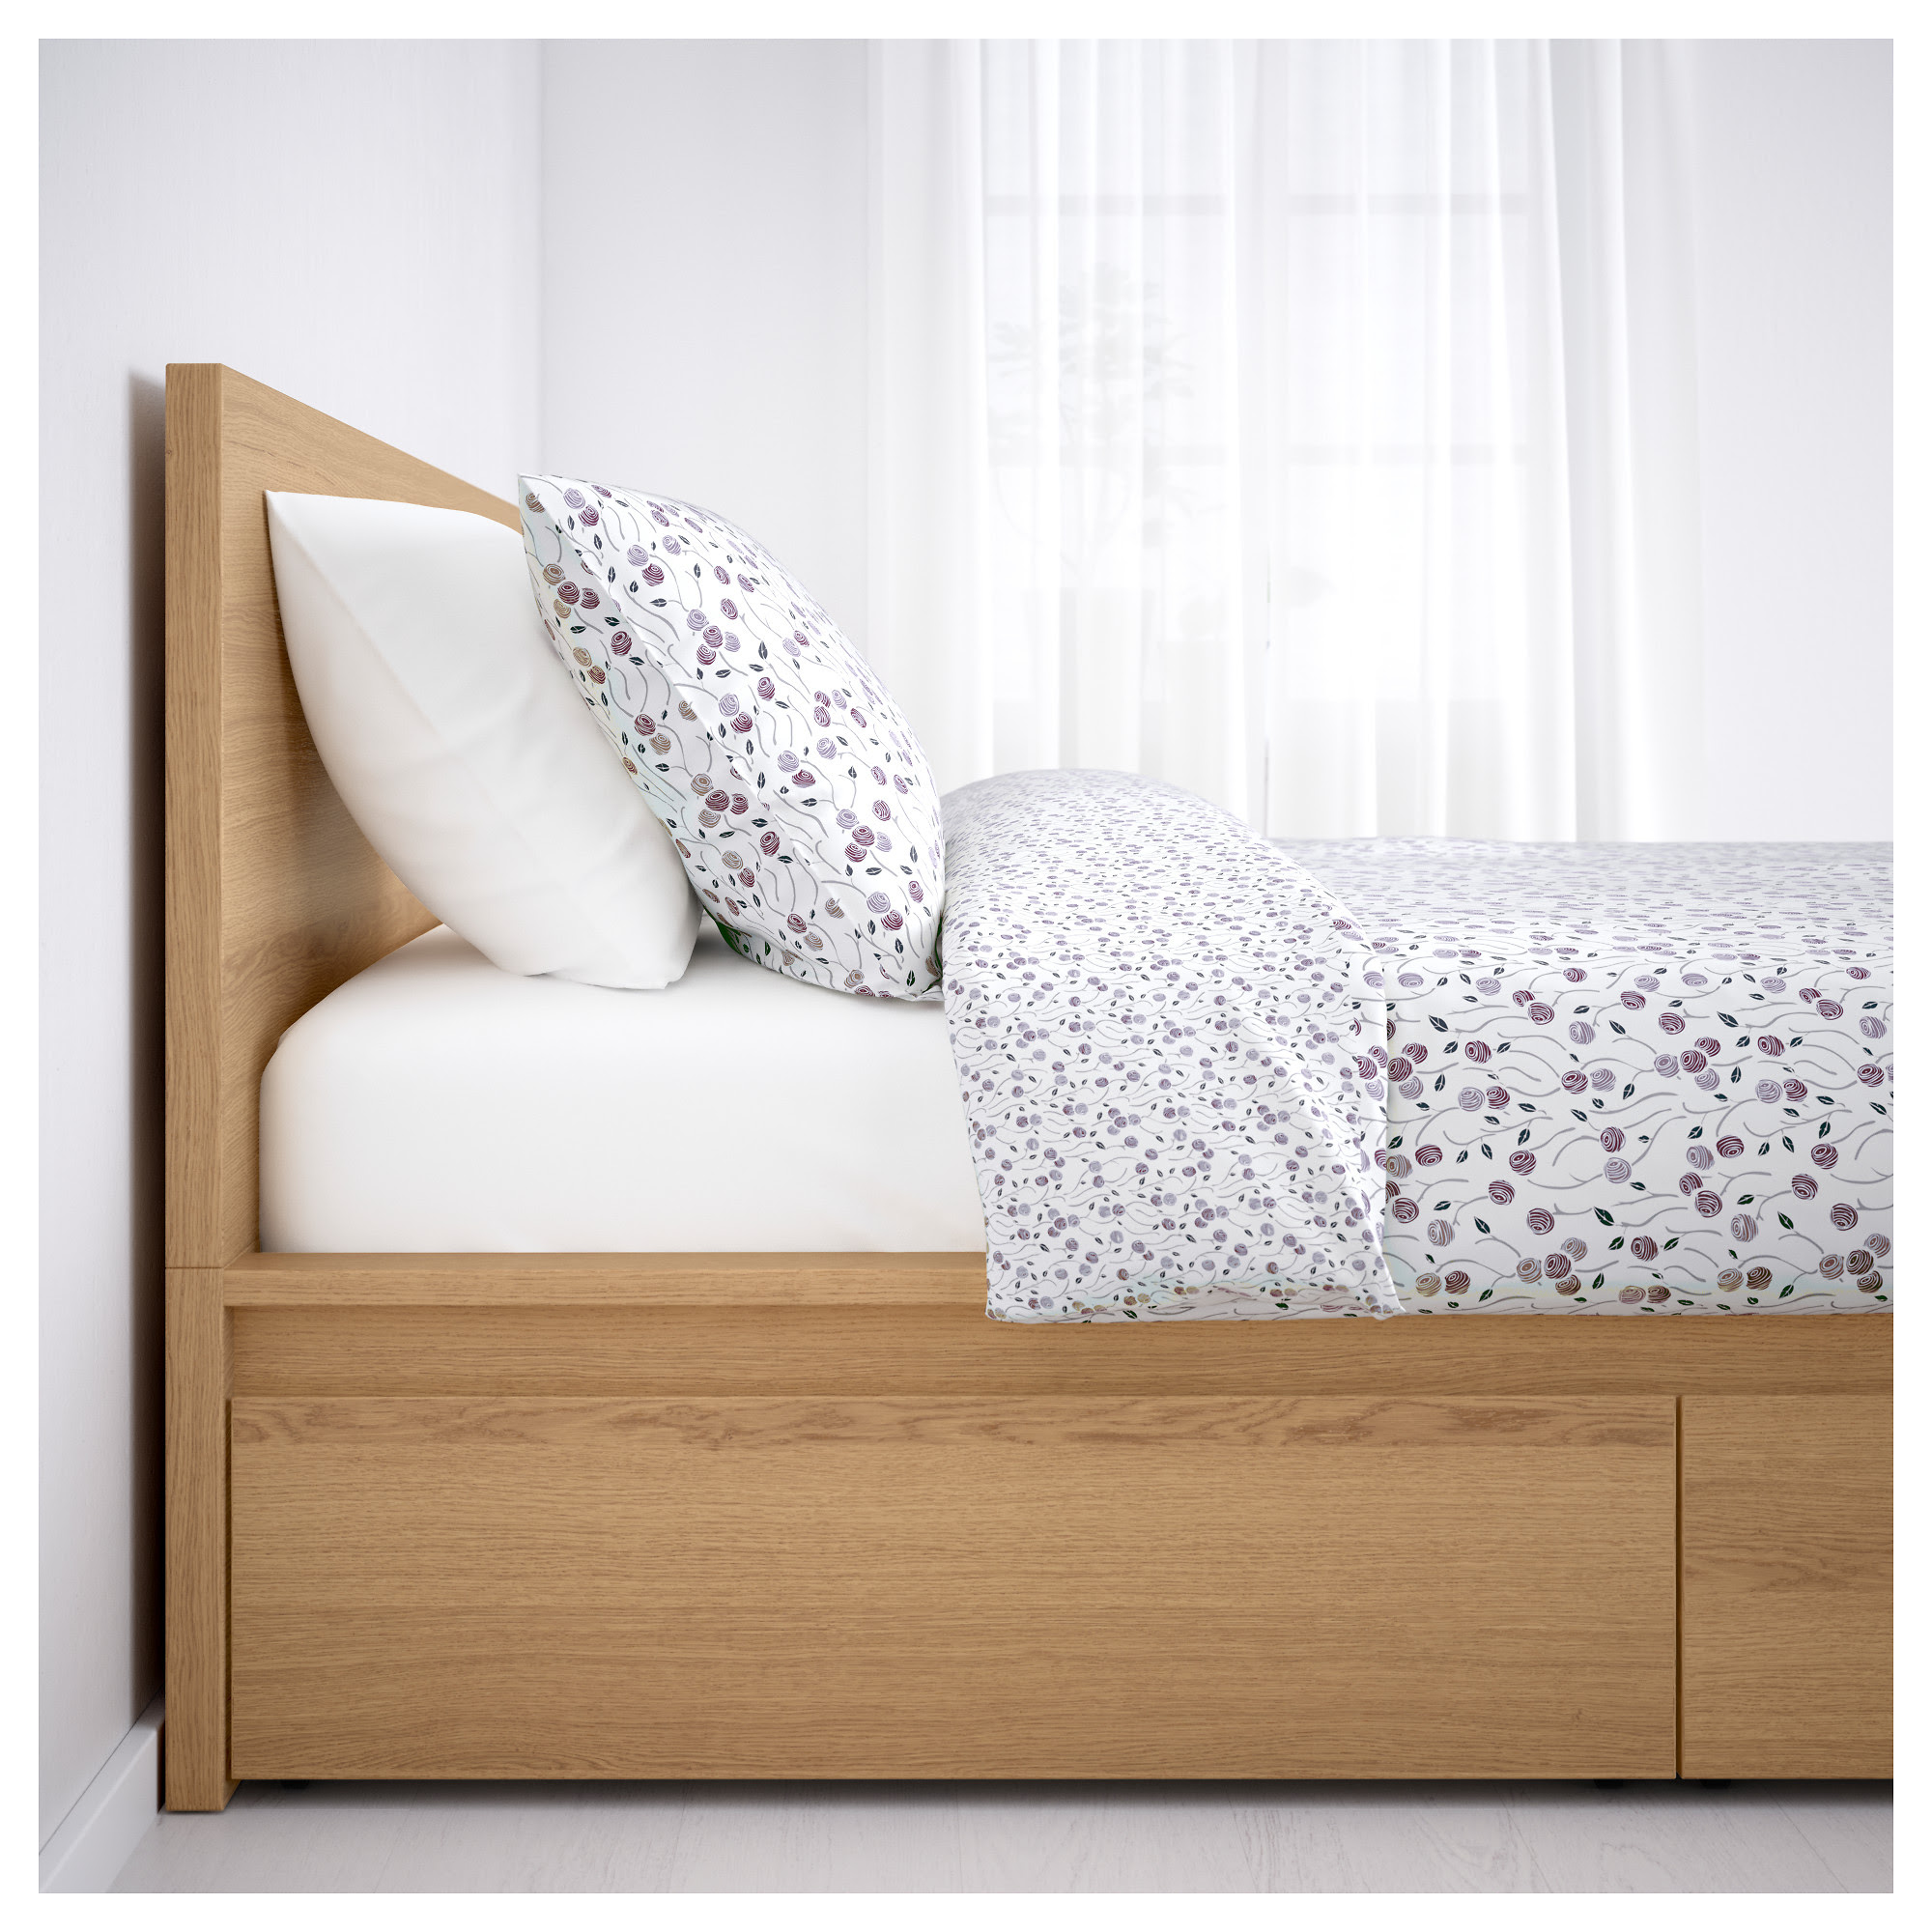 Ikea Malm Bed Frames With Night Stands Assembled At The Apartments